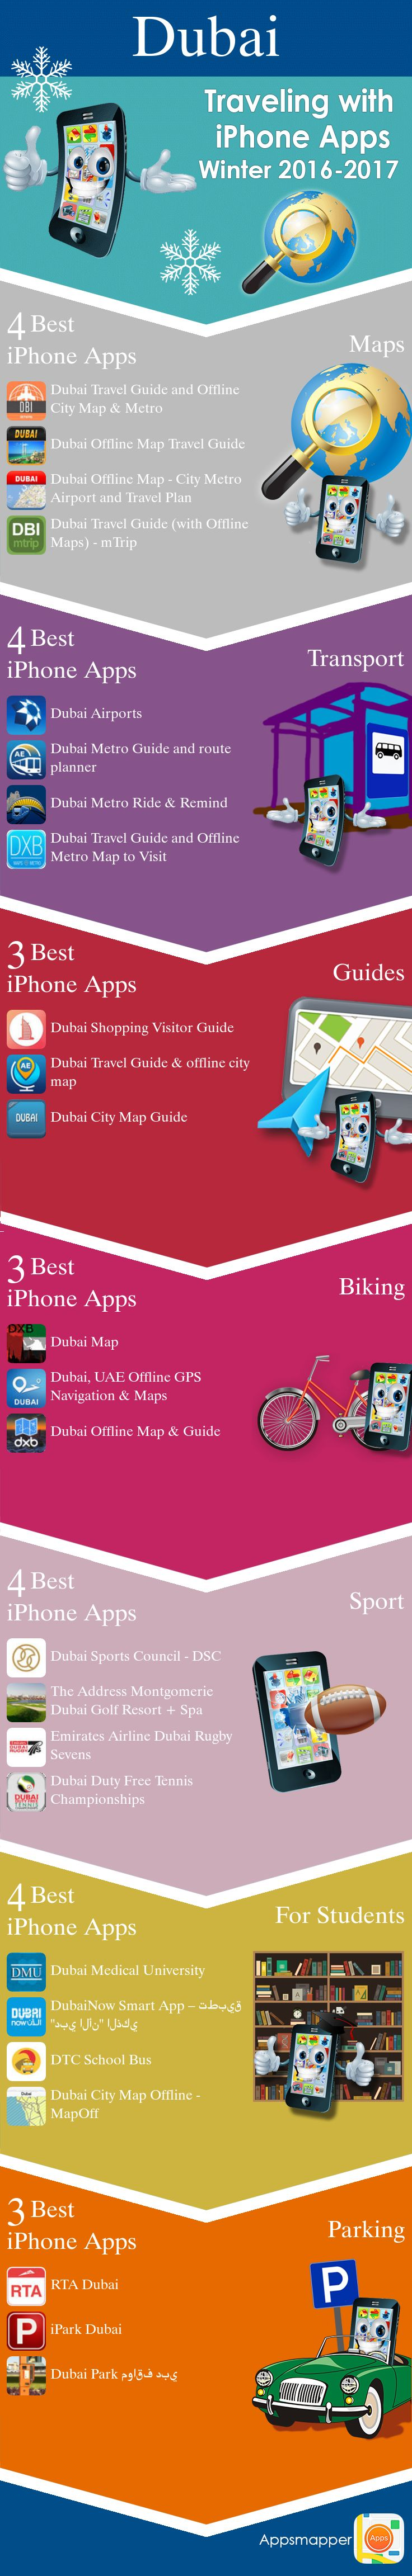 Dubai iPhone apps: Travel Guides, Maps, Transportation, Biking, Museums, Parking, Sport and apps for Students.